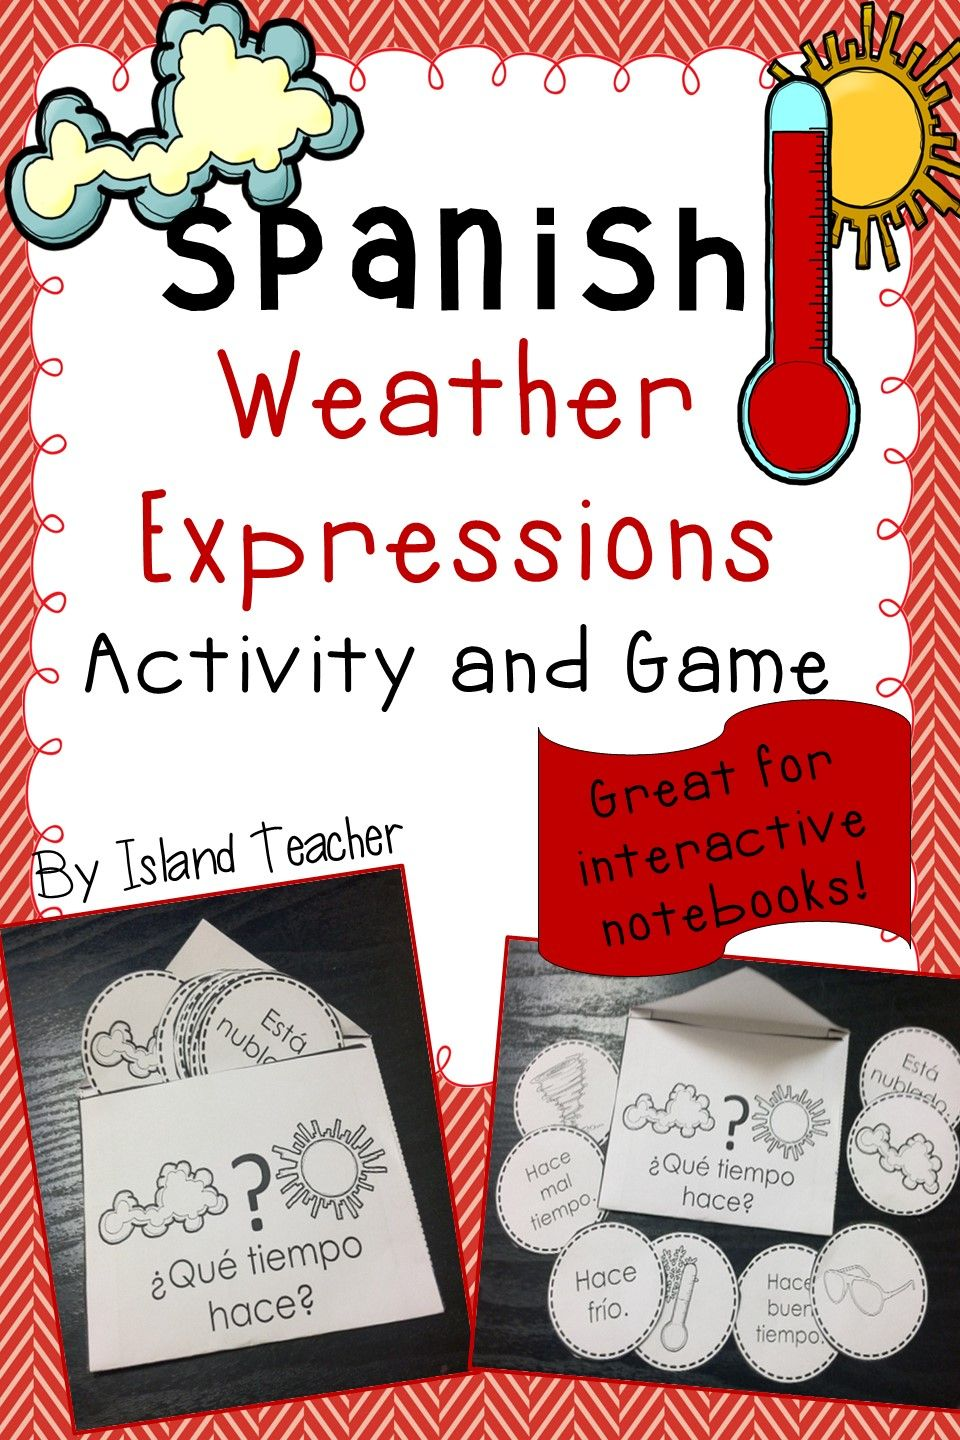 Workbooks weather expressions in spanish worksheets : Spanish Interactive Notebook Weather Activity and Game | Game ...